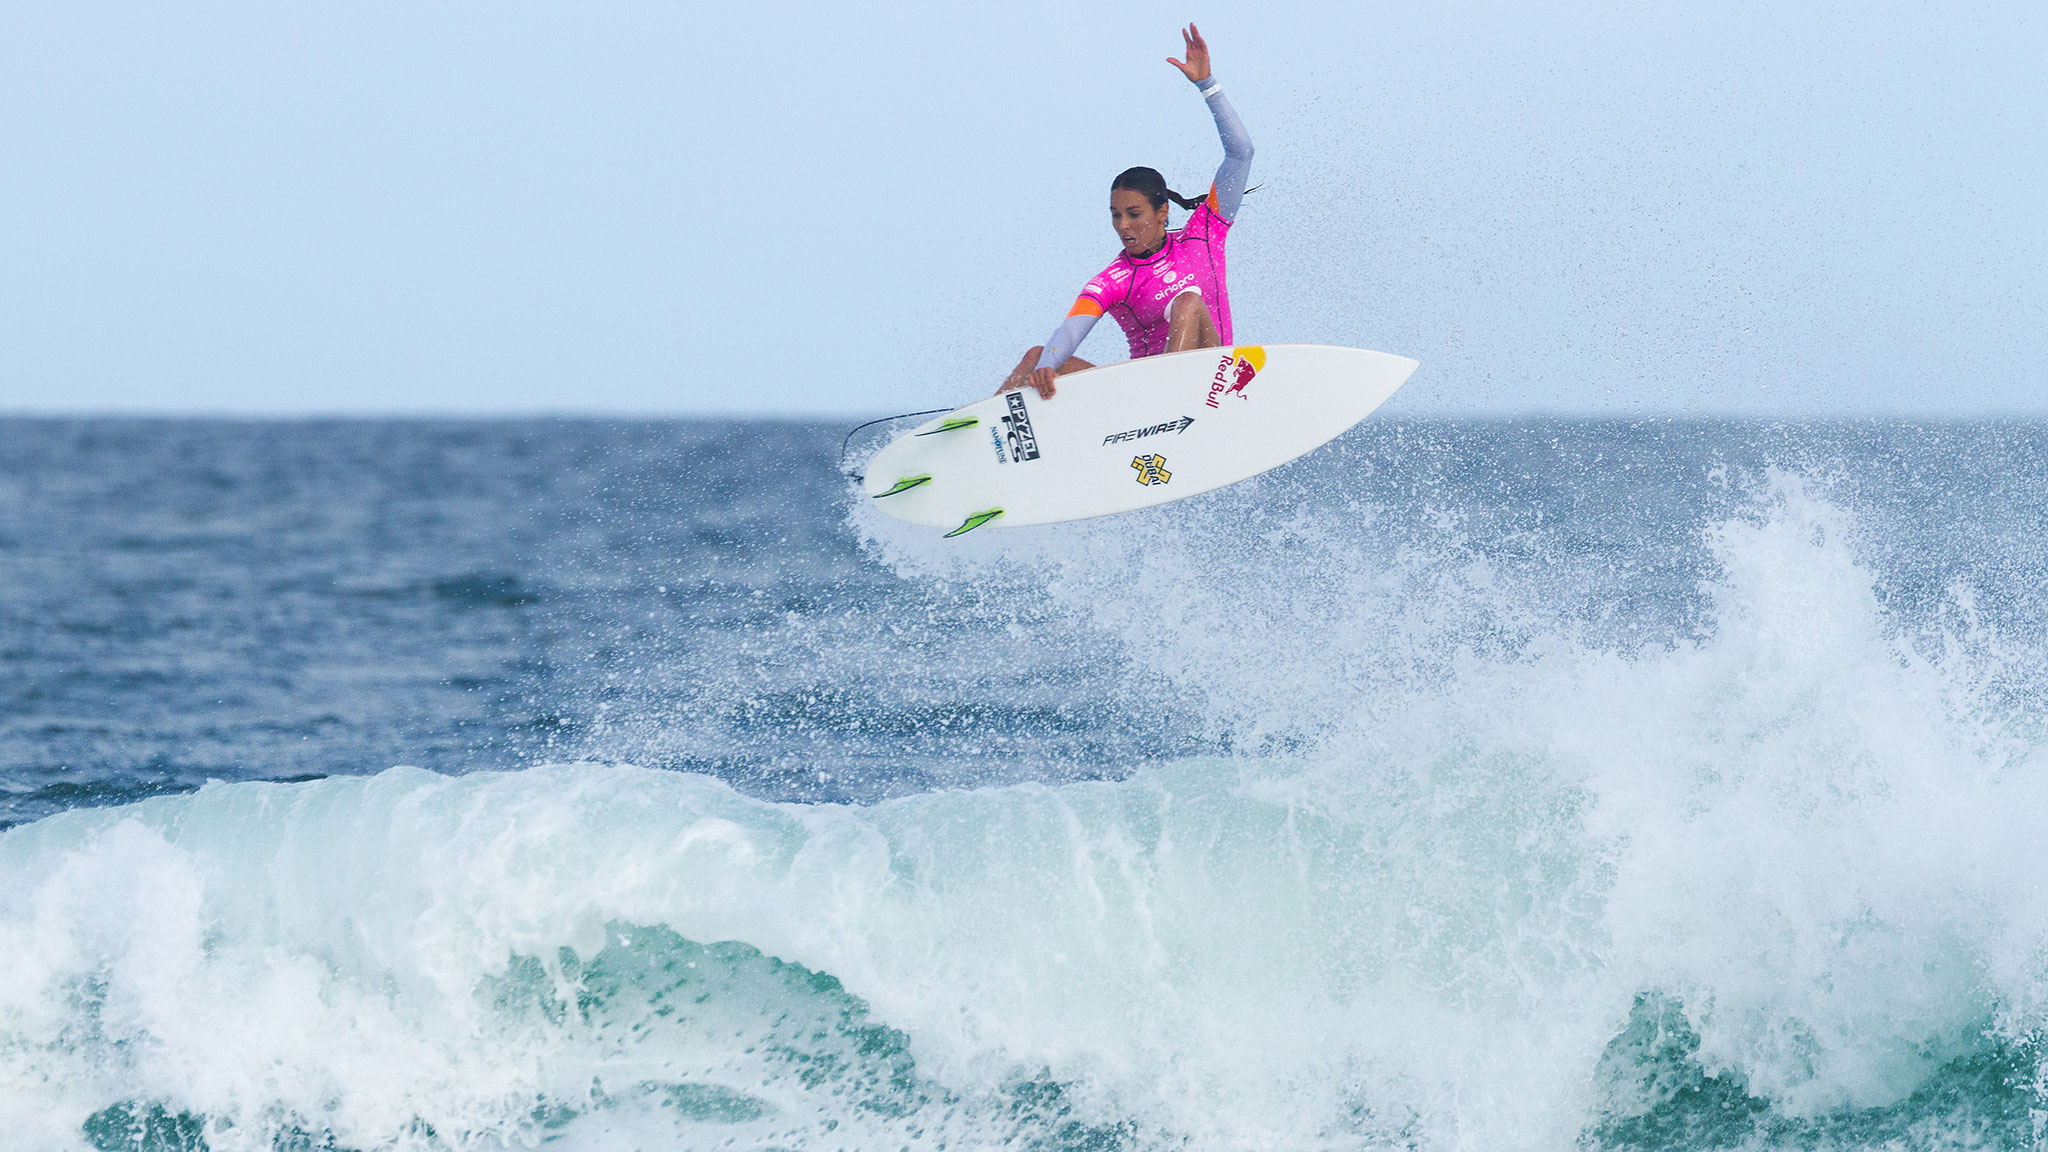 Fitzgibbons still shines